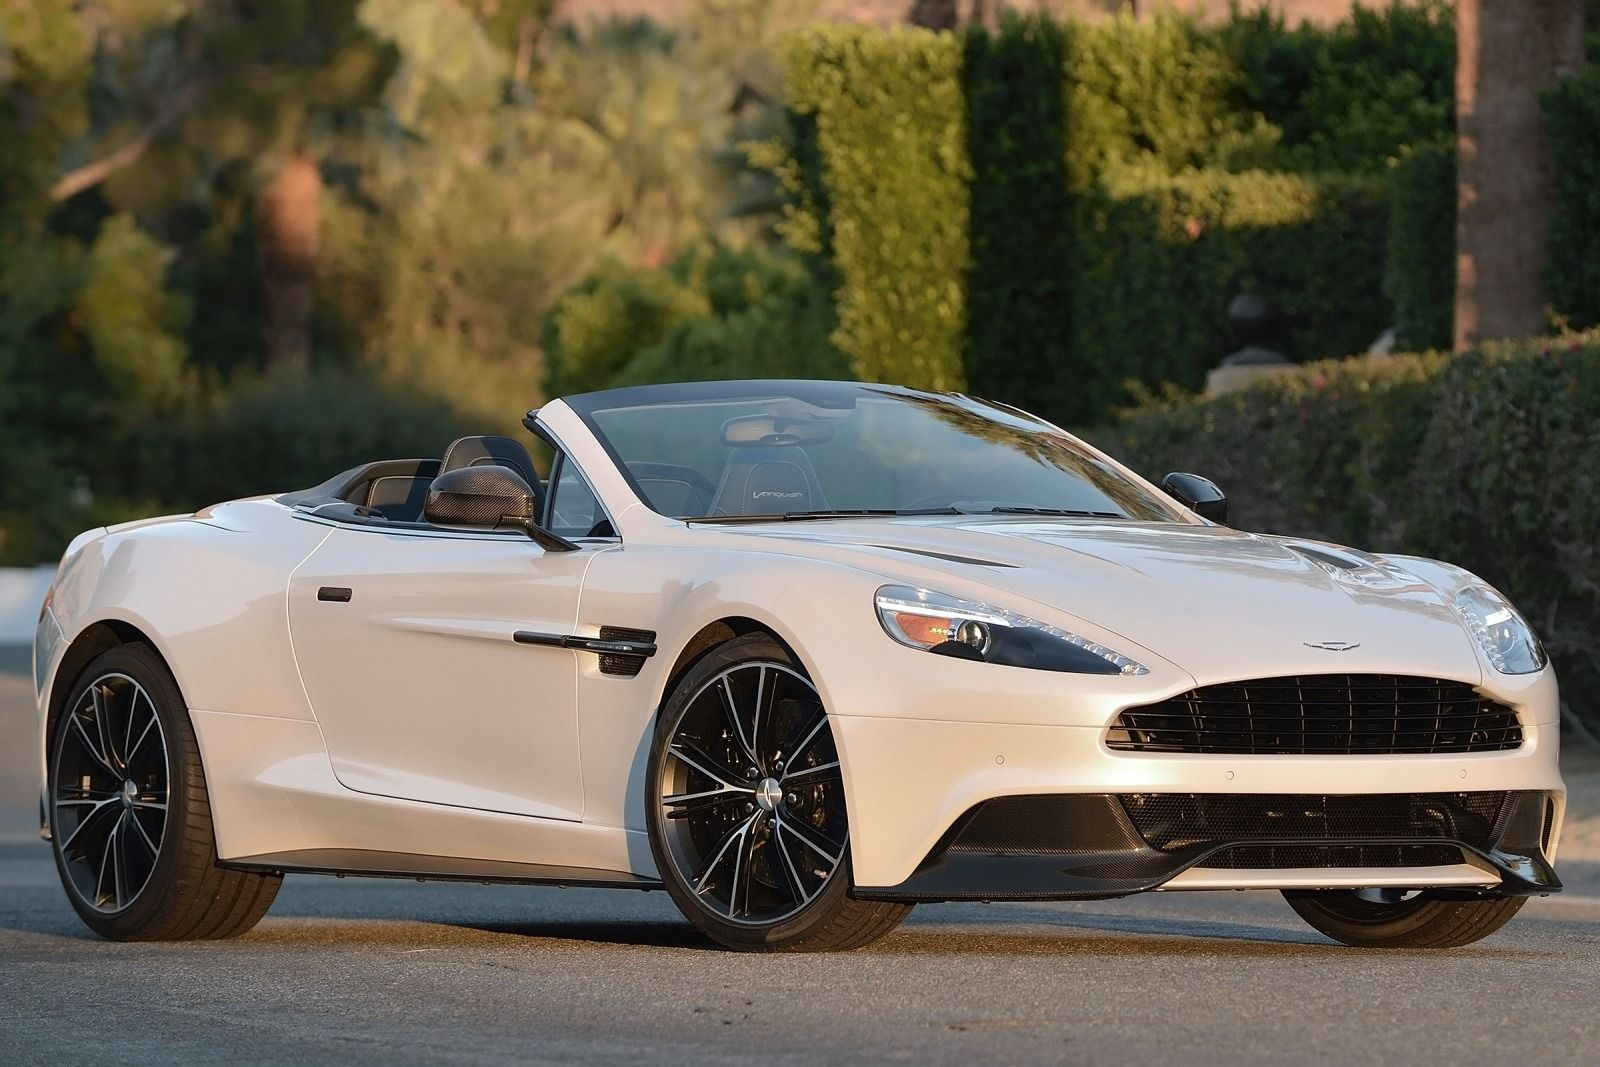 she 39 s a lady aston martin vanquish cars aston martin vanquish aston martin aston martin dbs. Black Bedroom Furniture Sets. Home Design Ideas